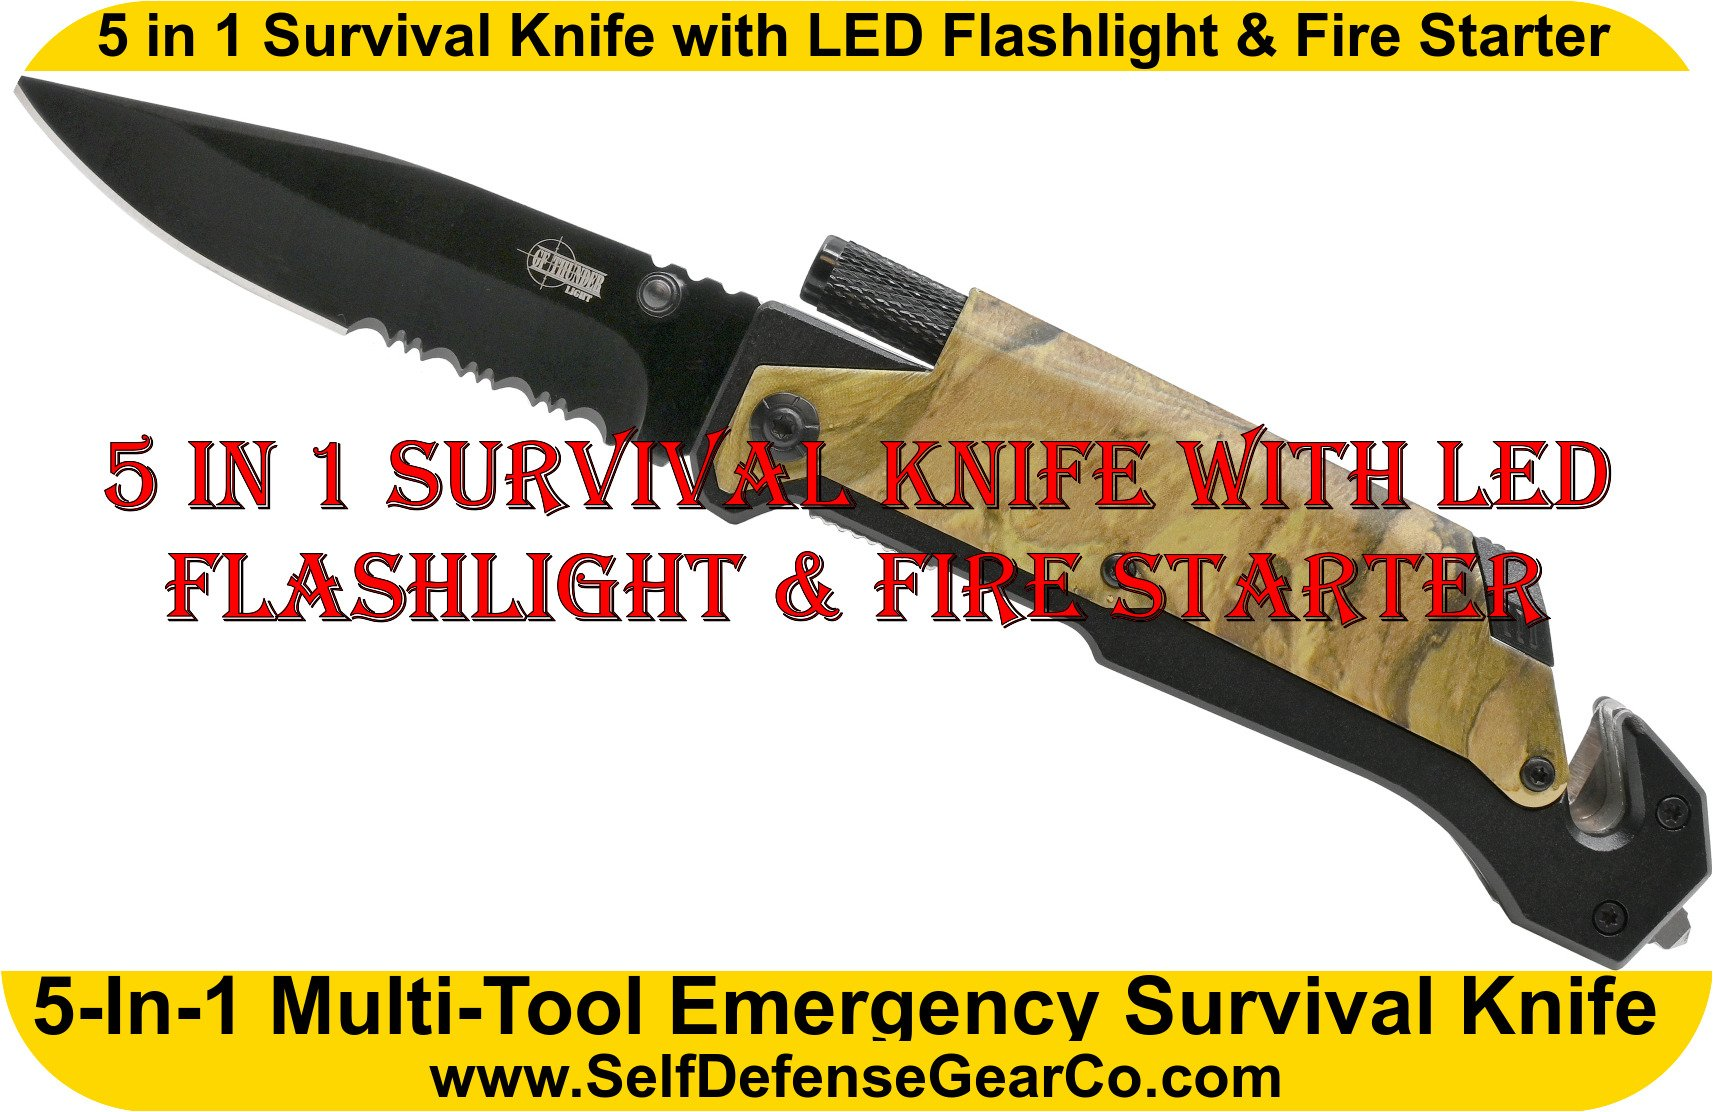 5 in 1 Survival Knife with LED Flashlight & Fire Starter